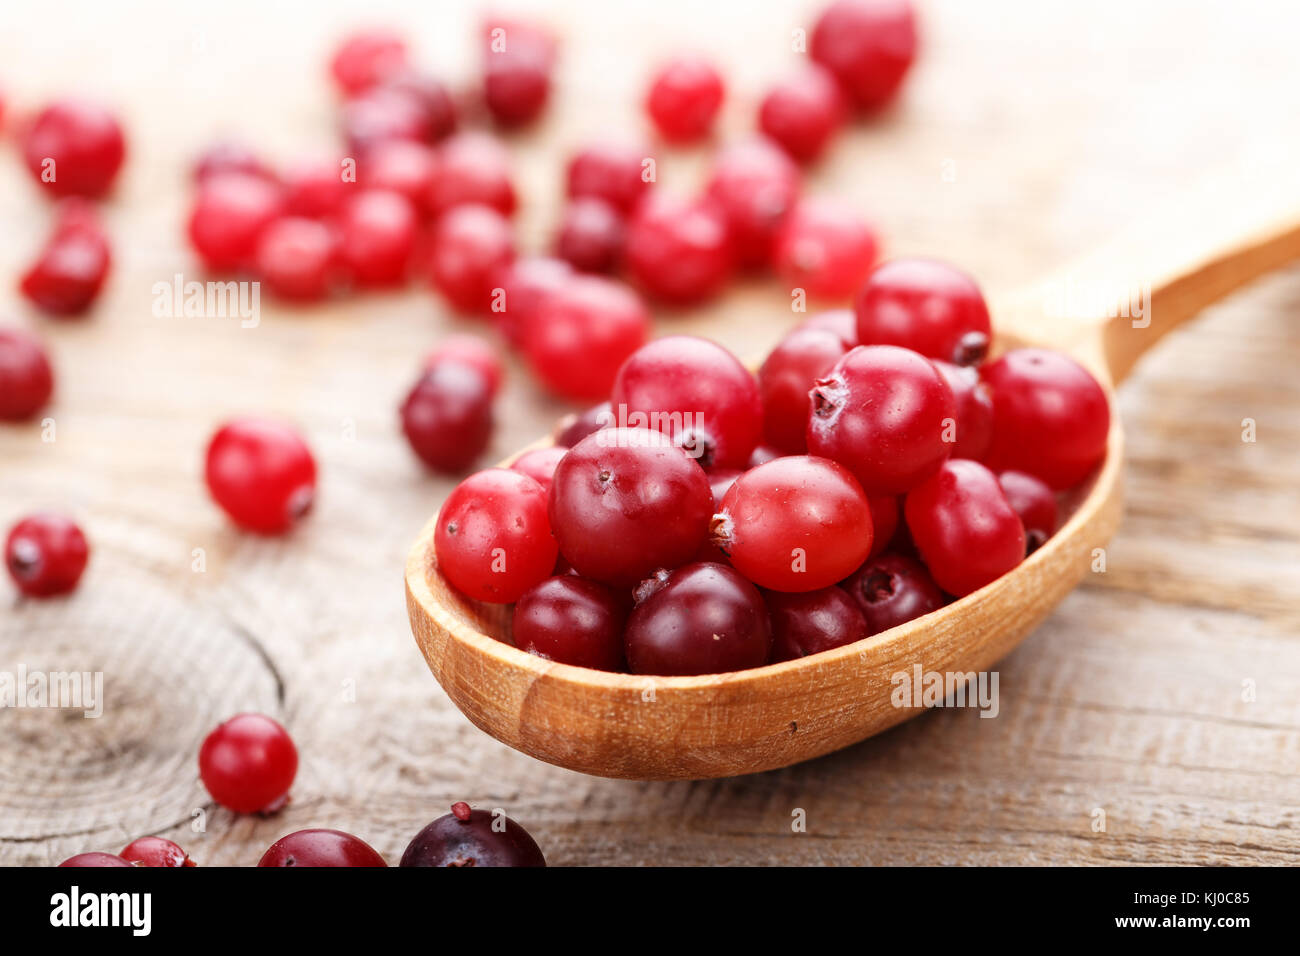 ripe cranberries on a wooden background, organic vitamin product for strengthening immunity - Stock Image